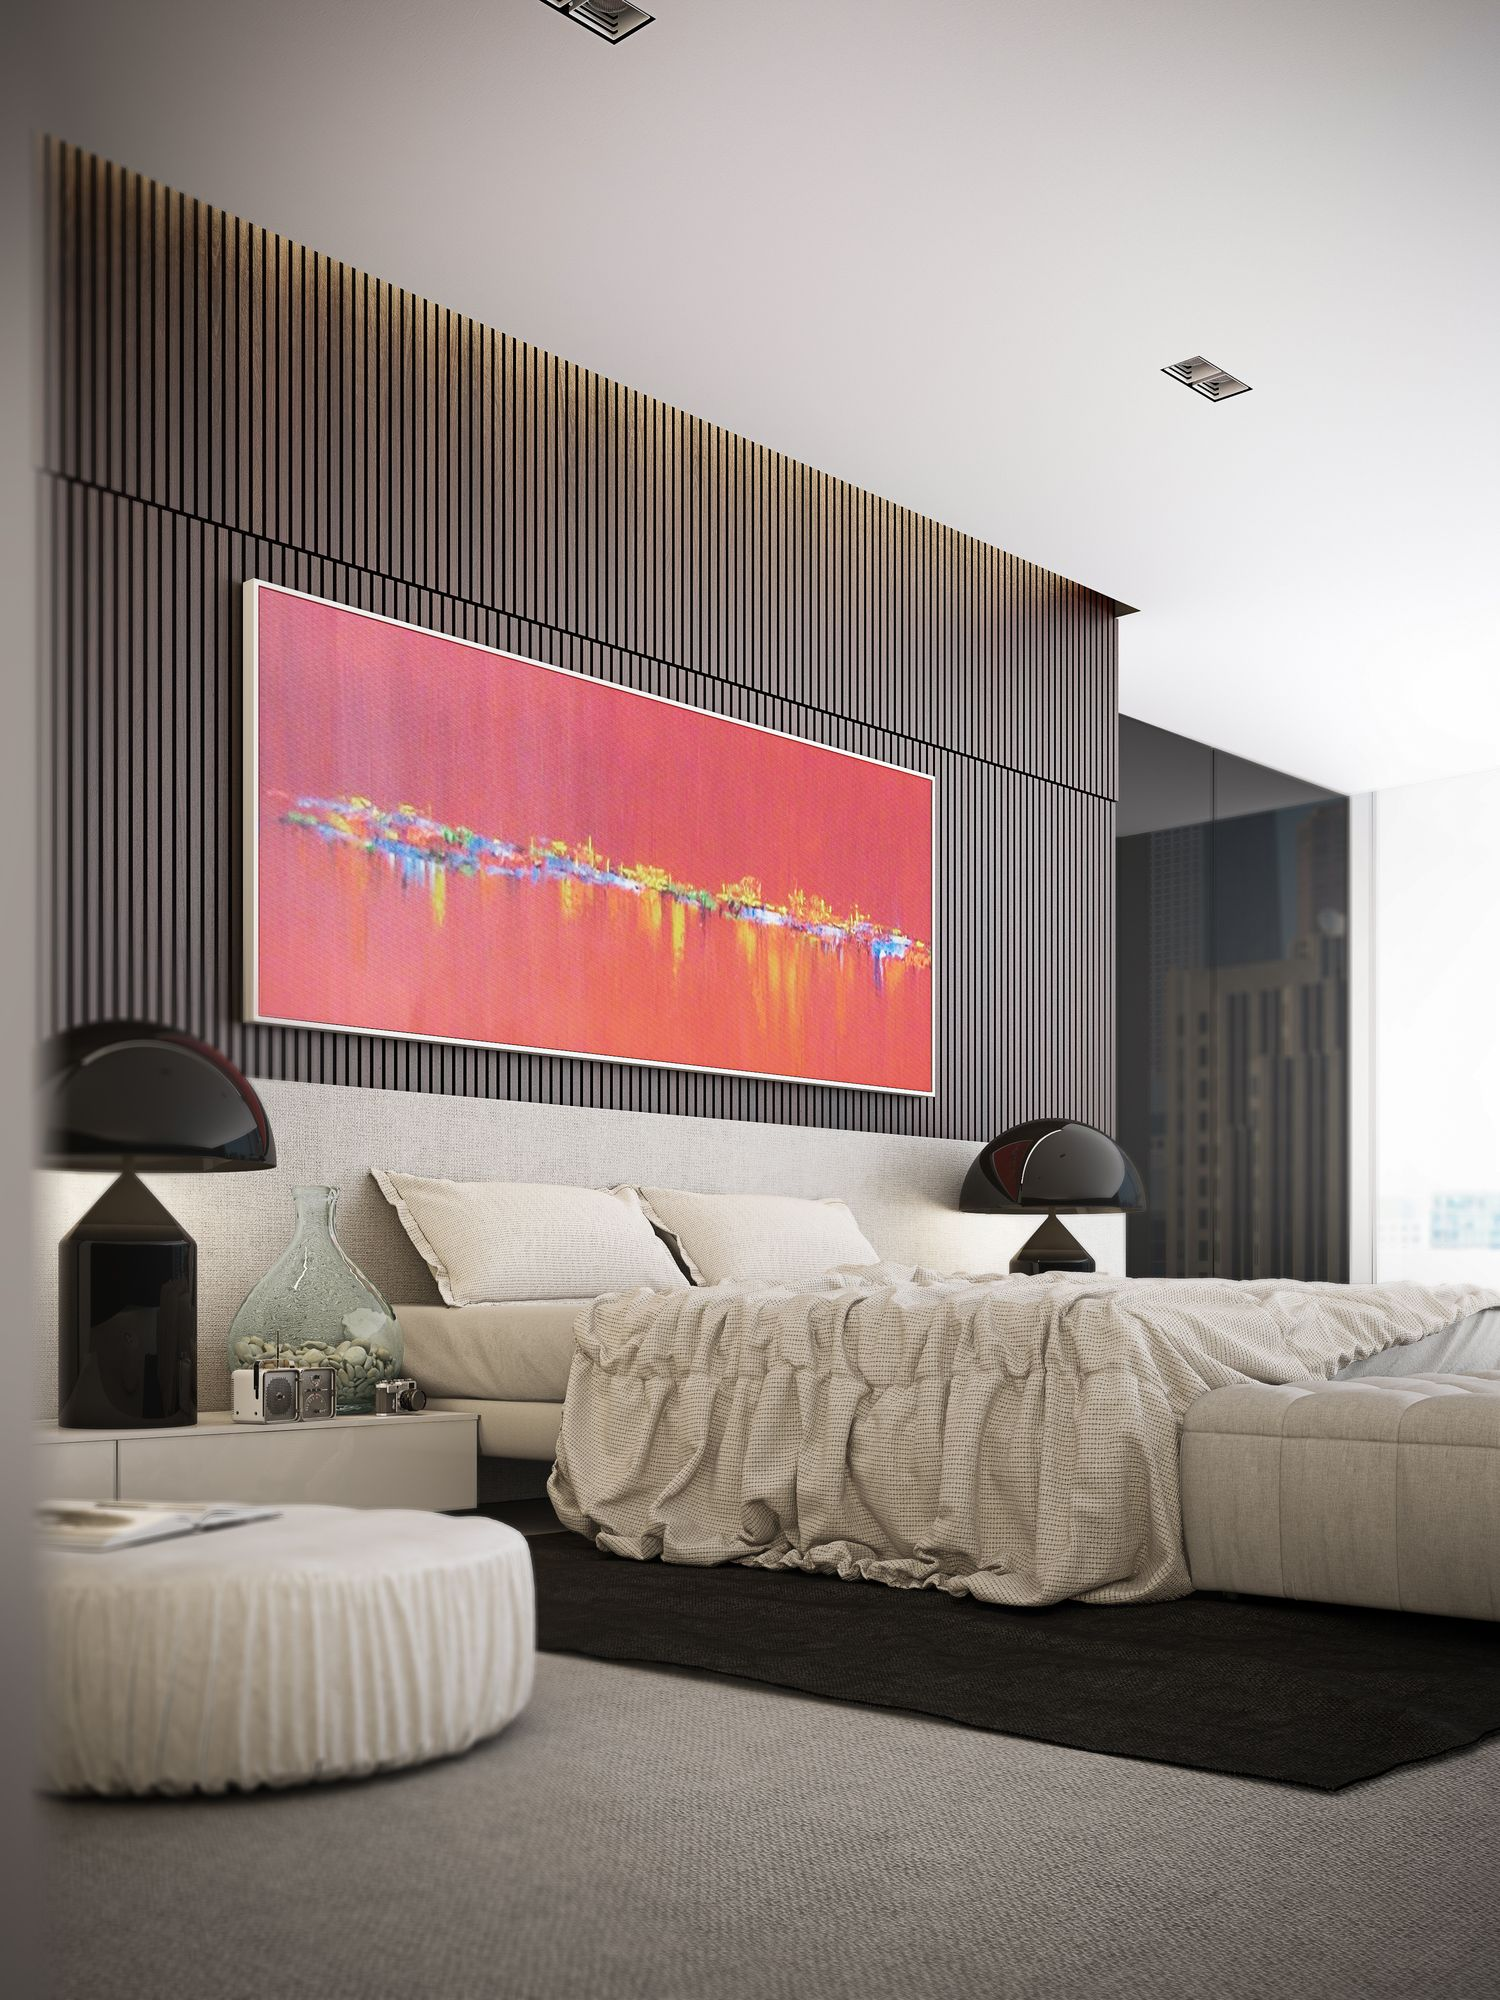 Master bedroom feature wall  Current Project  The Penthouse u eightytwo  wooden divider